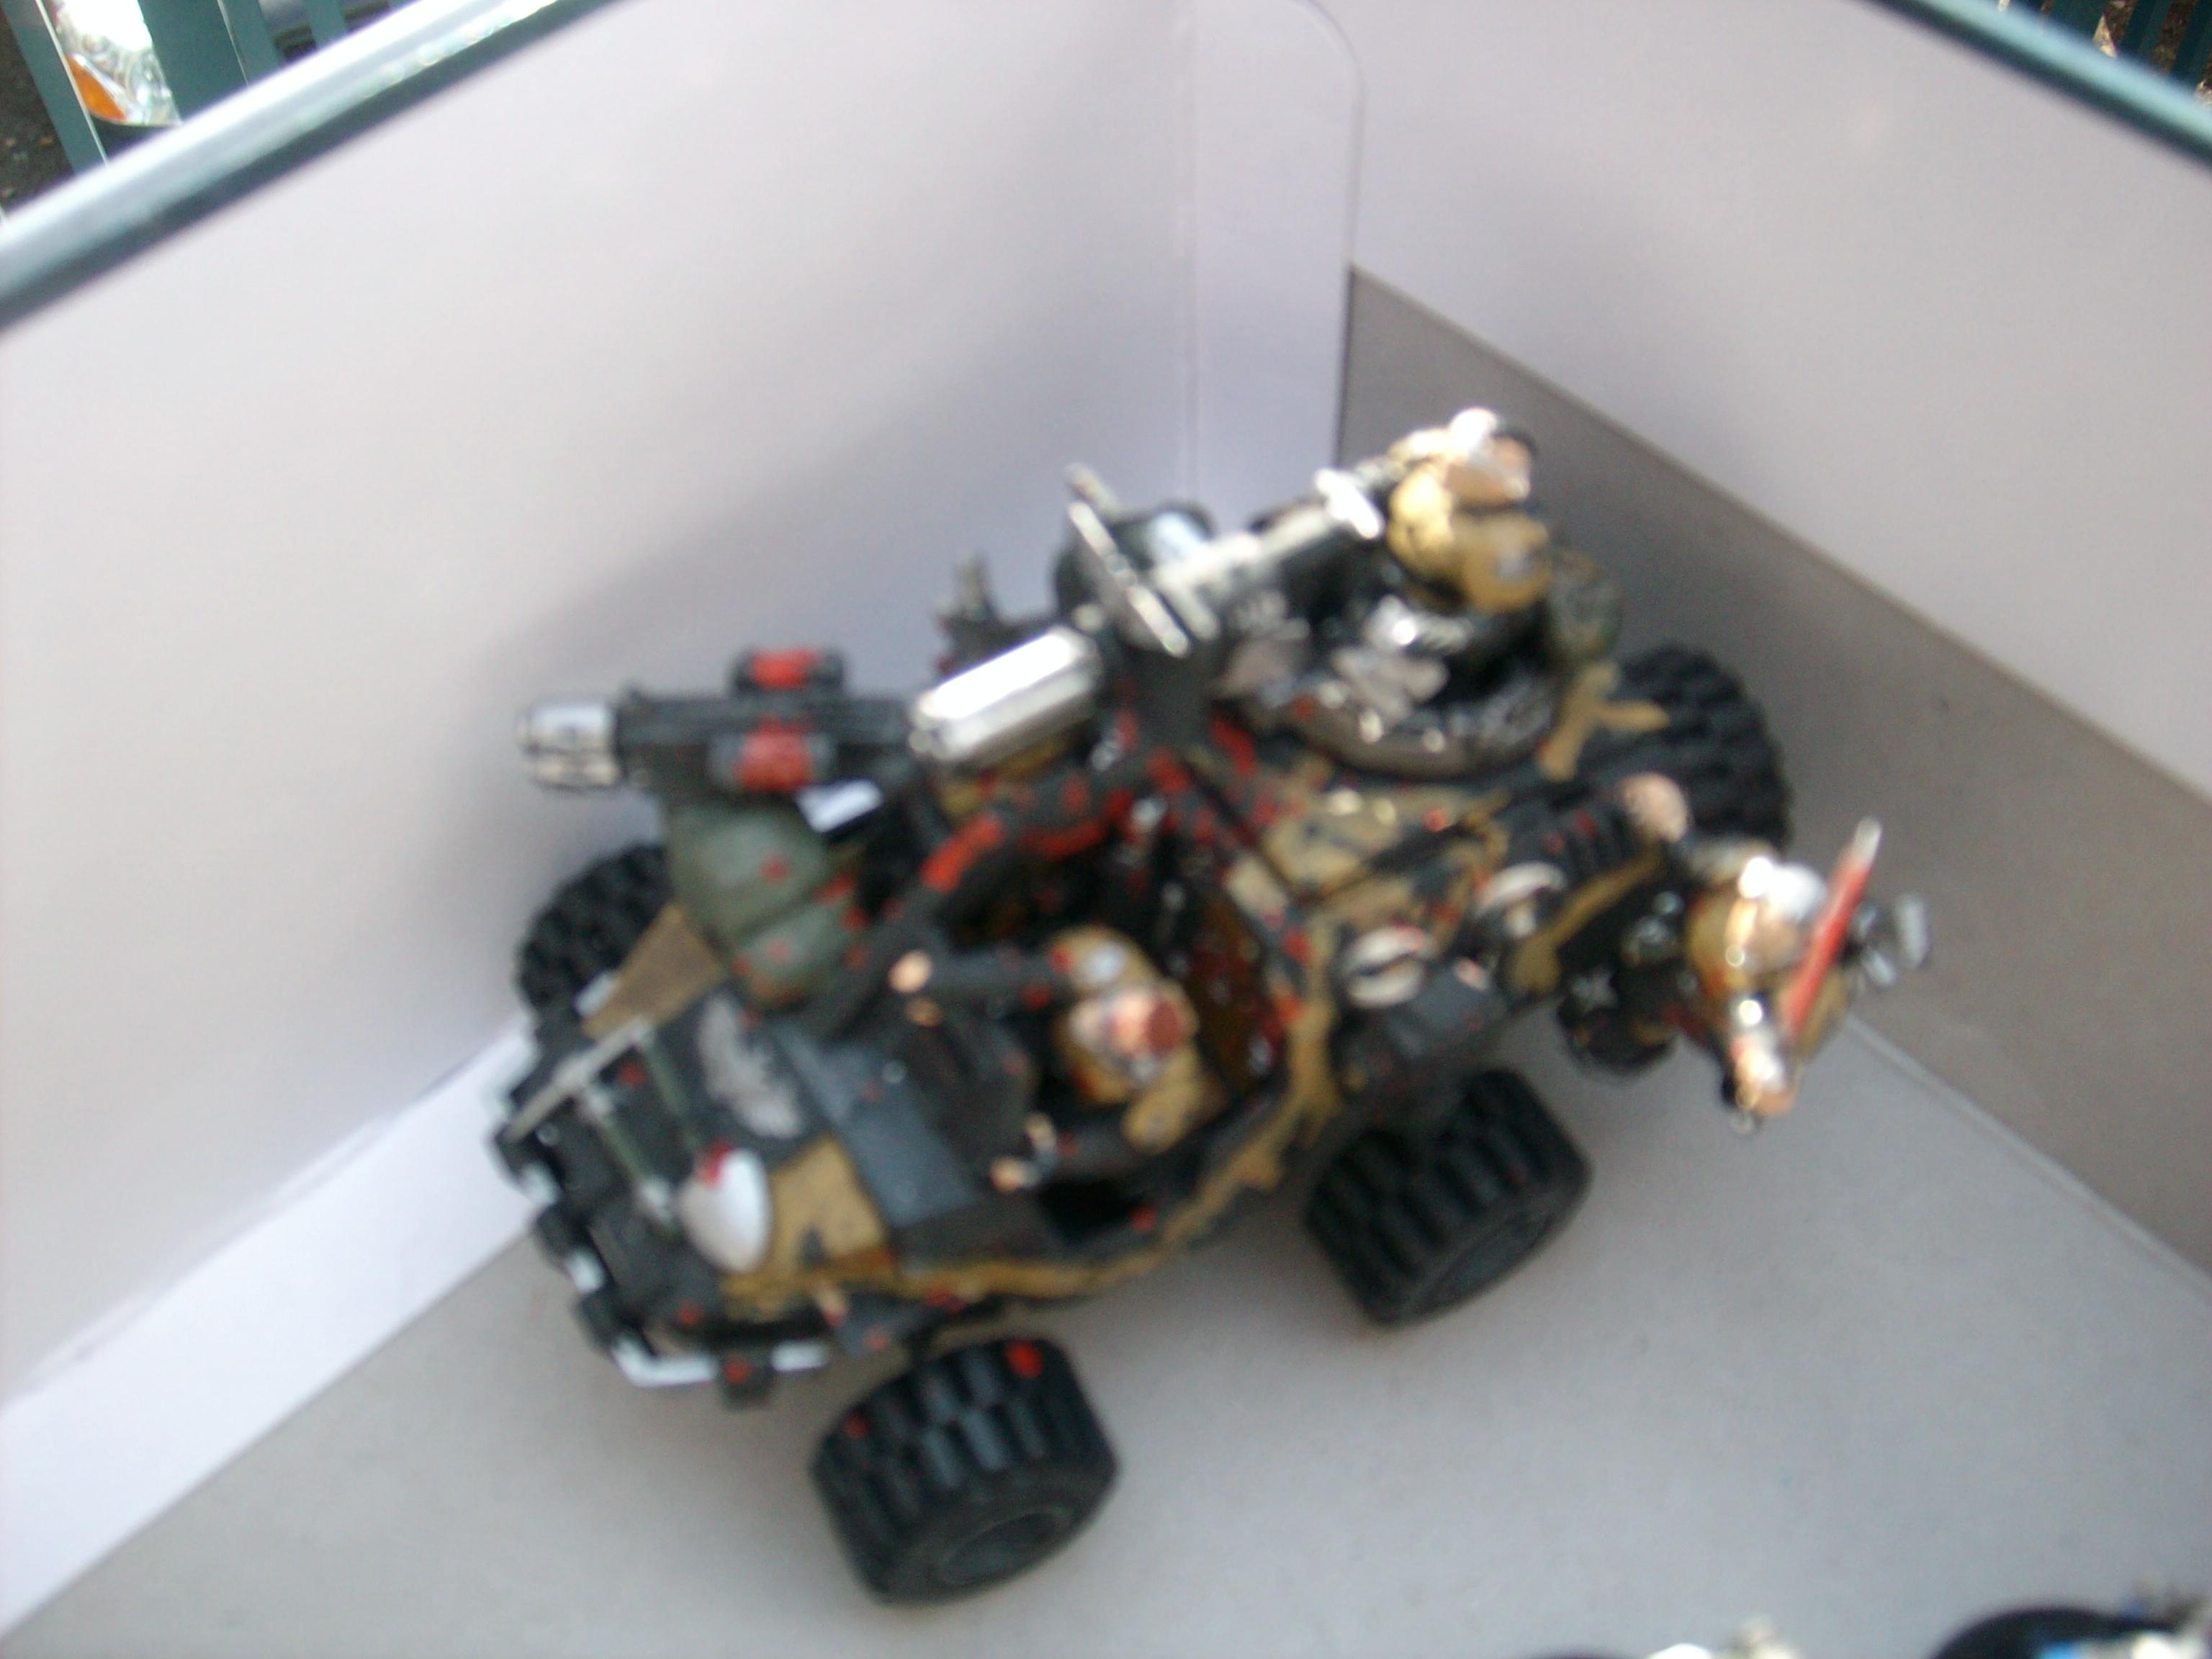 Blurred Photo, Buggy, Imperial Guard, Jeep